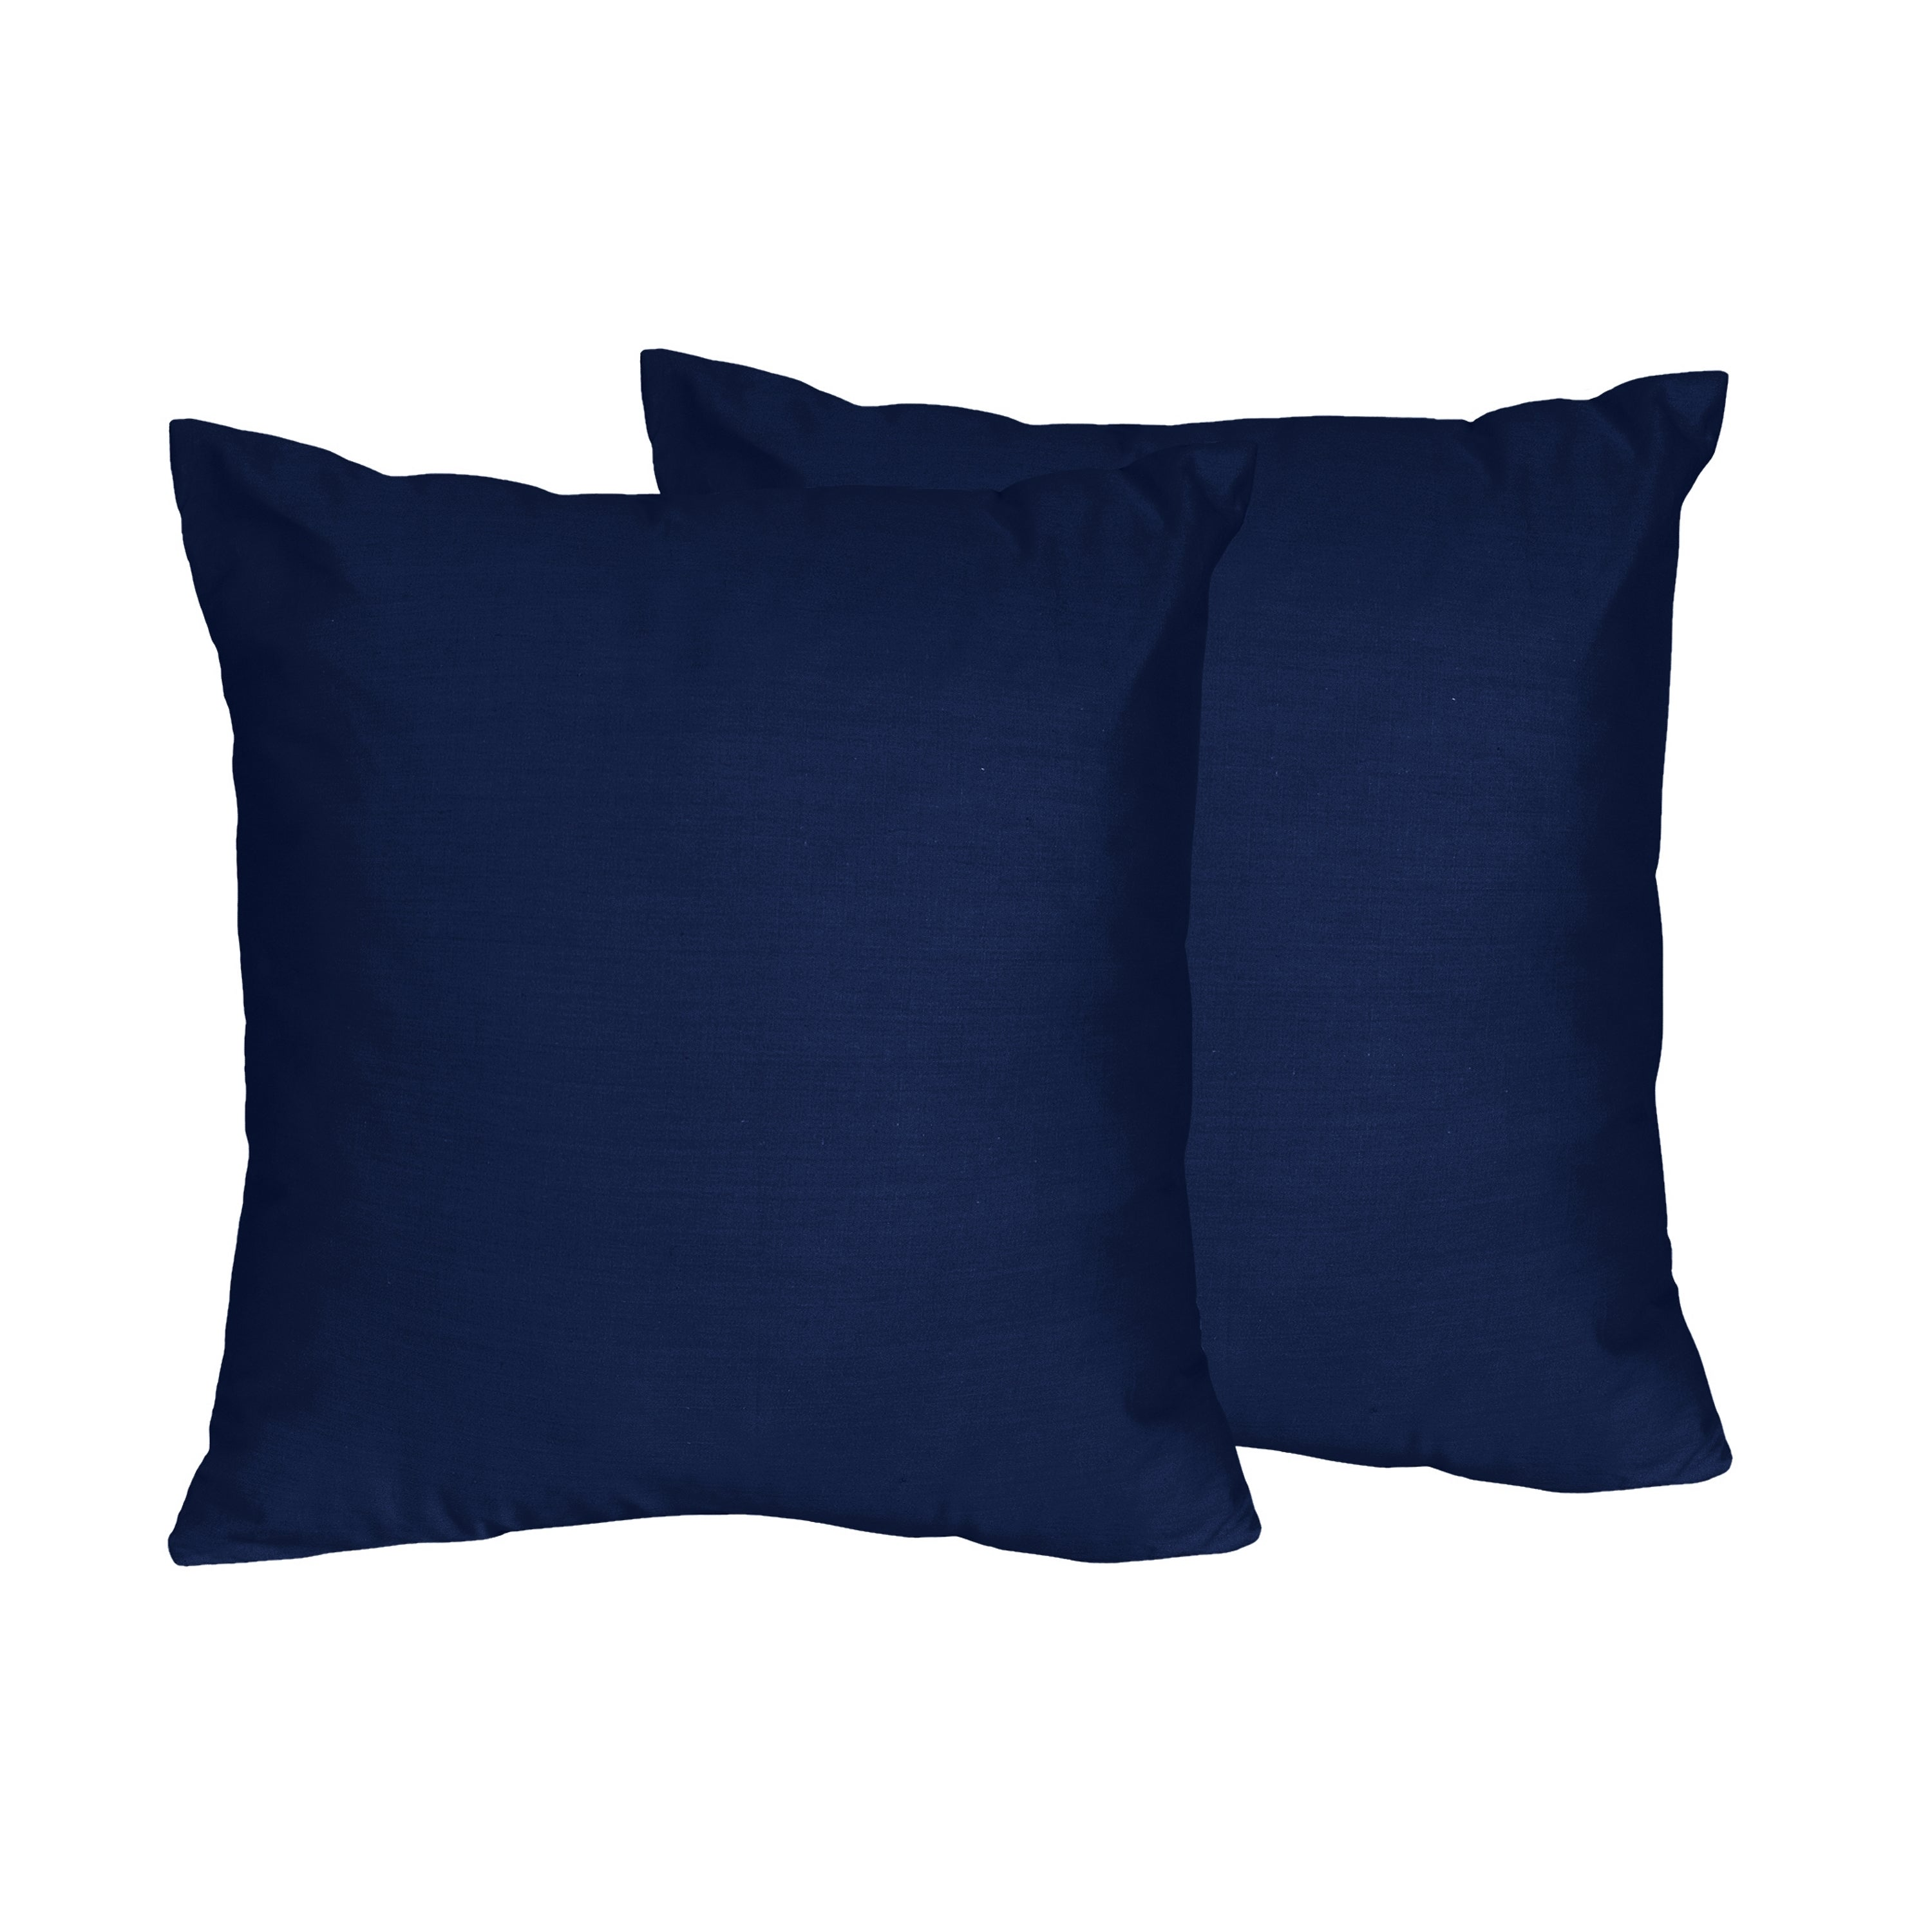 Sweet Jojo Designs Navy Blue and Grey Stripe Collection Decorative 18,inch  Accent Throw Pillows (Set of 2)